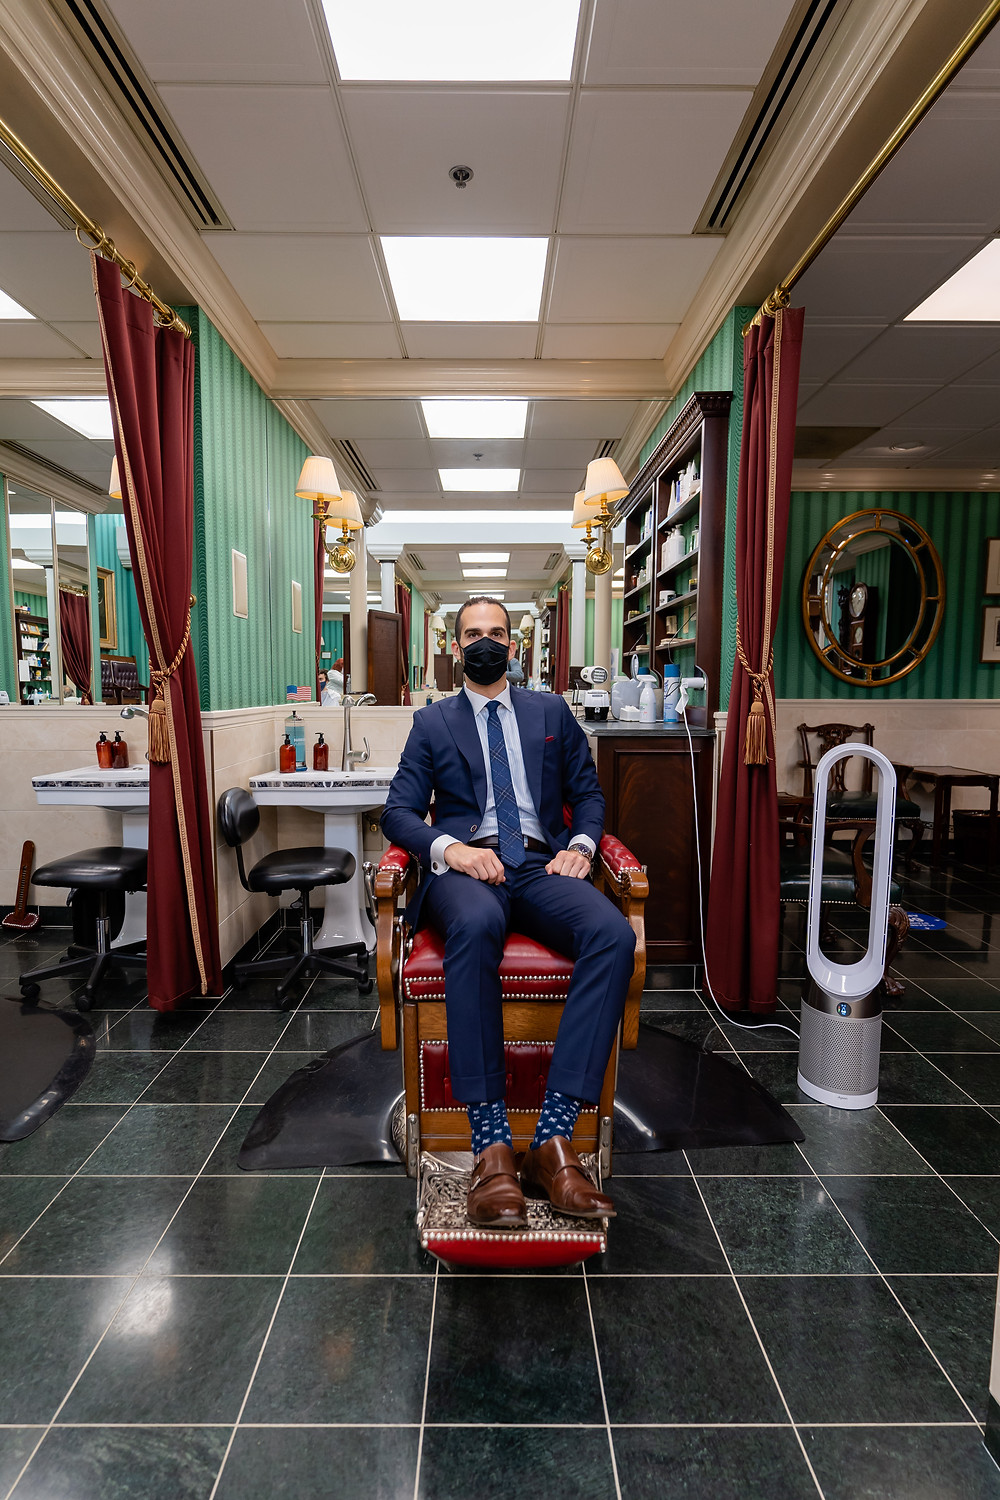 Dapper Professional in a barber chair at Merchant and Rhoades